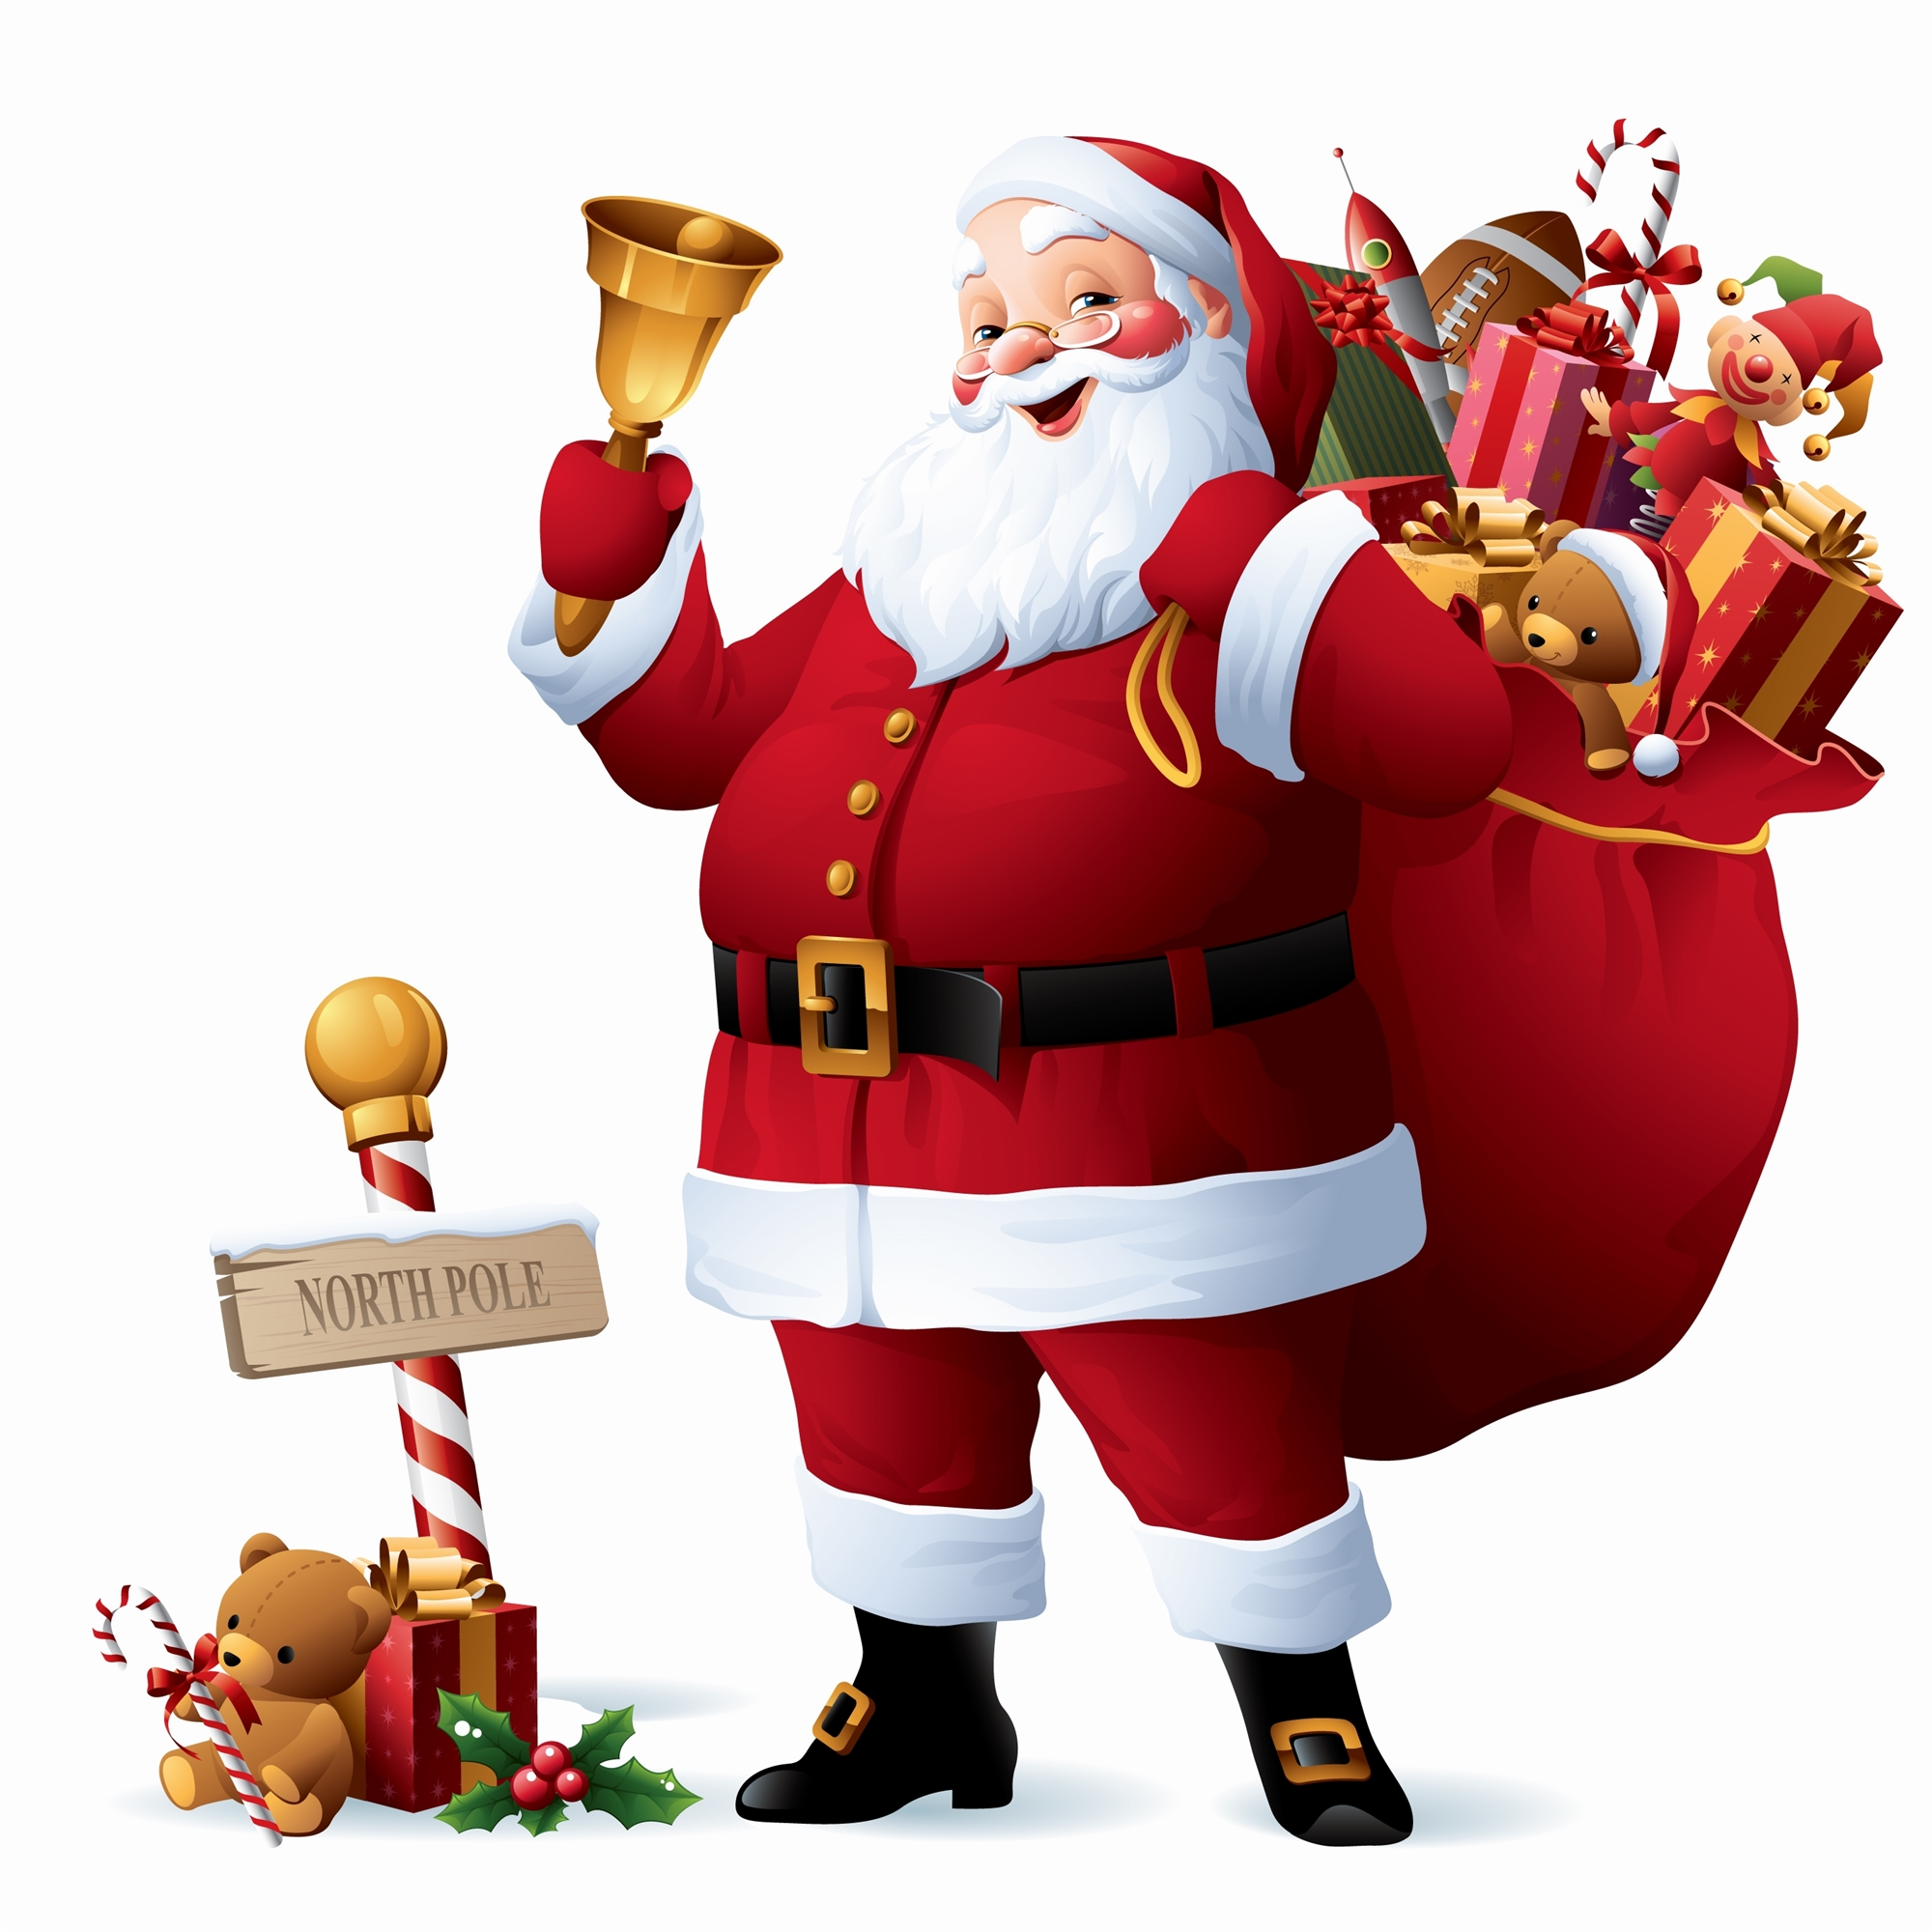 Santa Claus Picture For Merry Christmas 2016